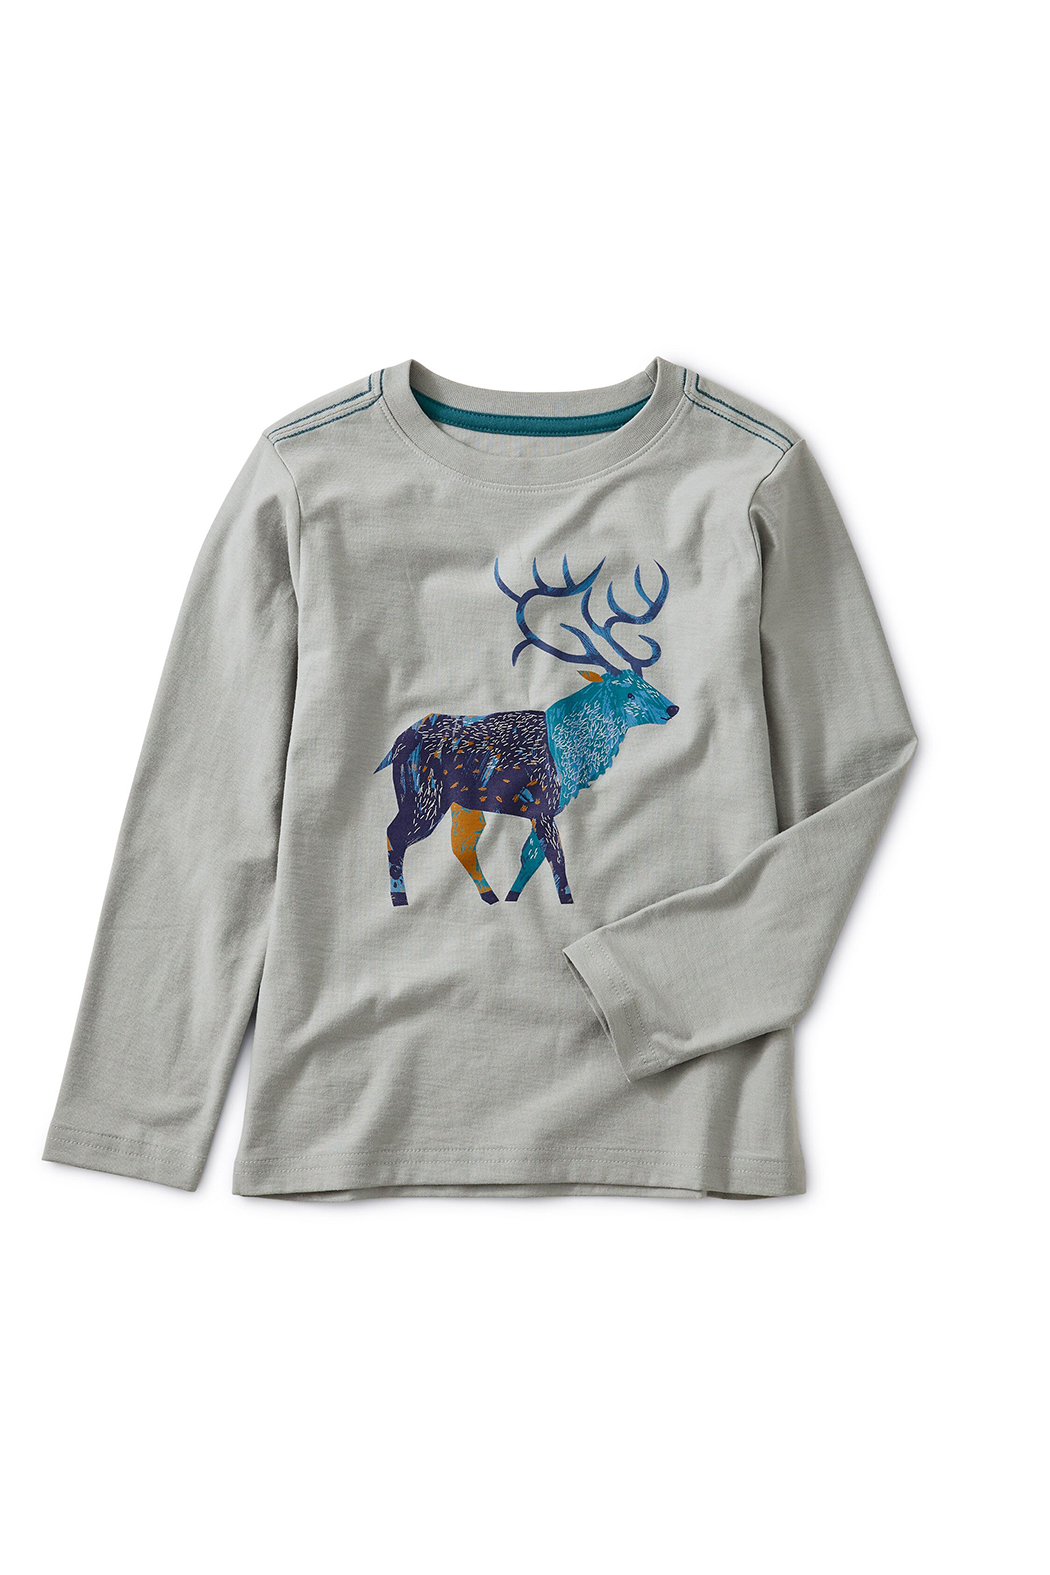 Tea Collection Stag Graphic Tee - Main Image